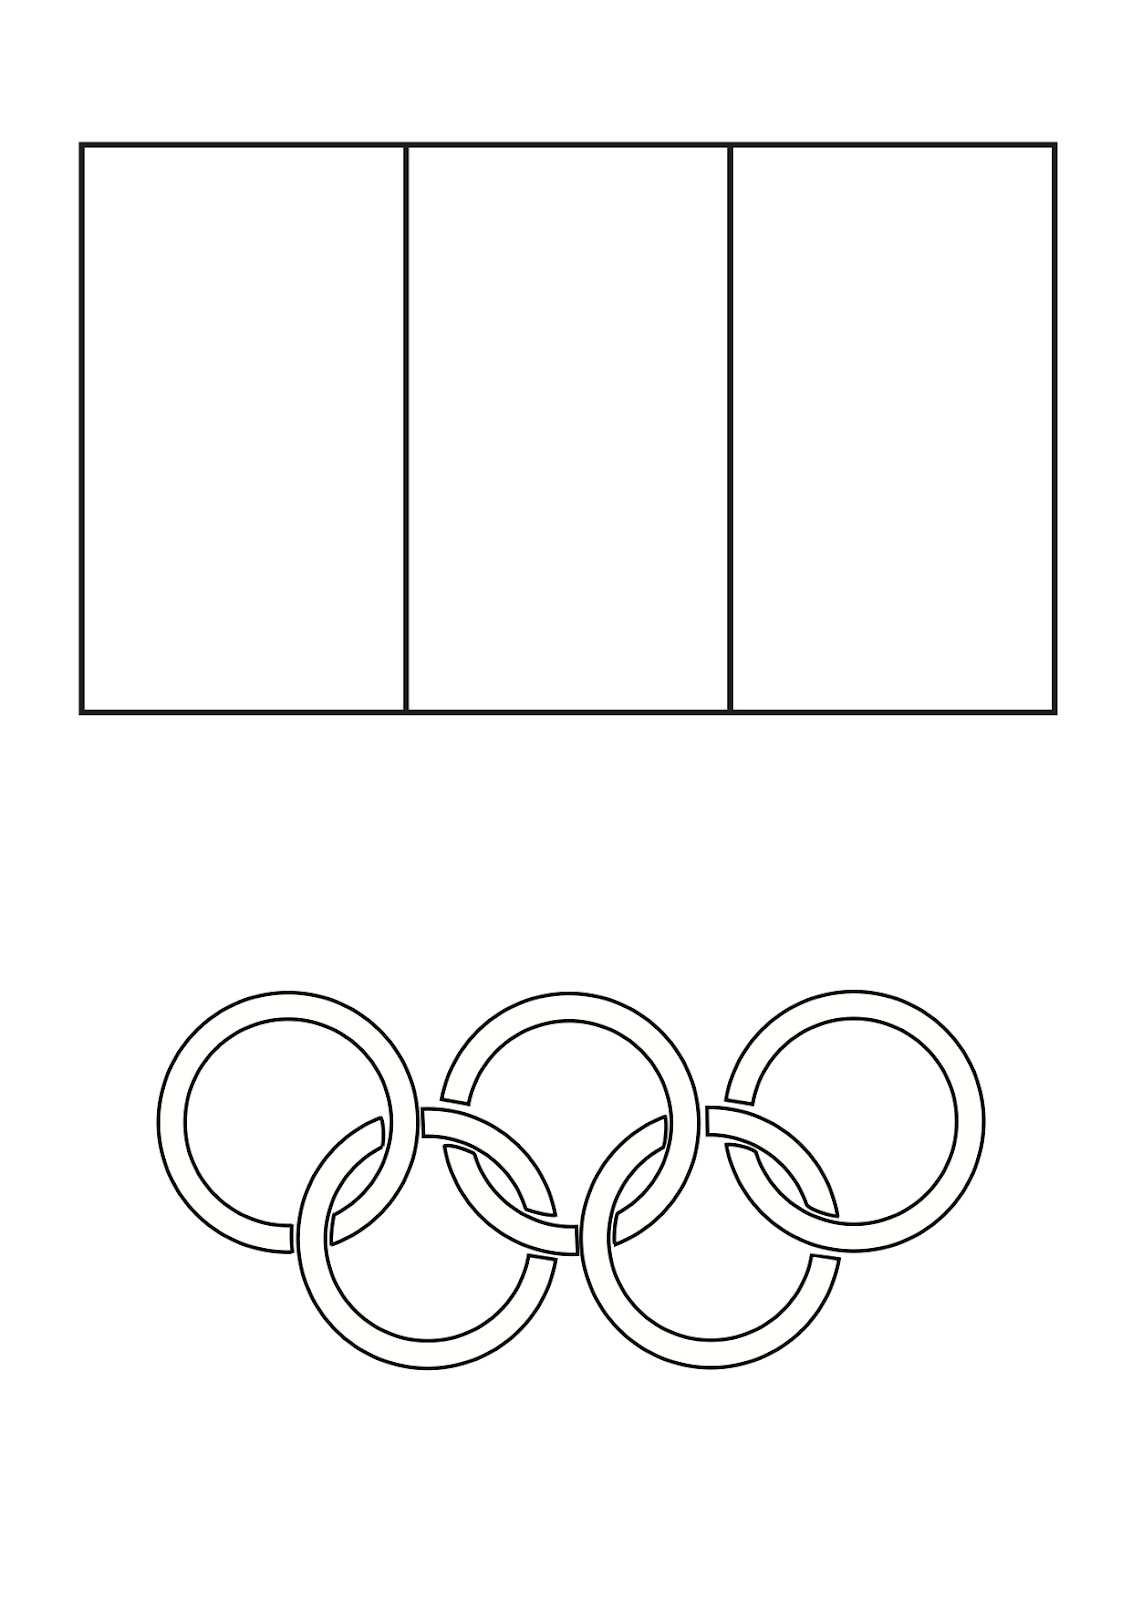 french flag coloring pages - photo#21